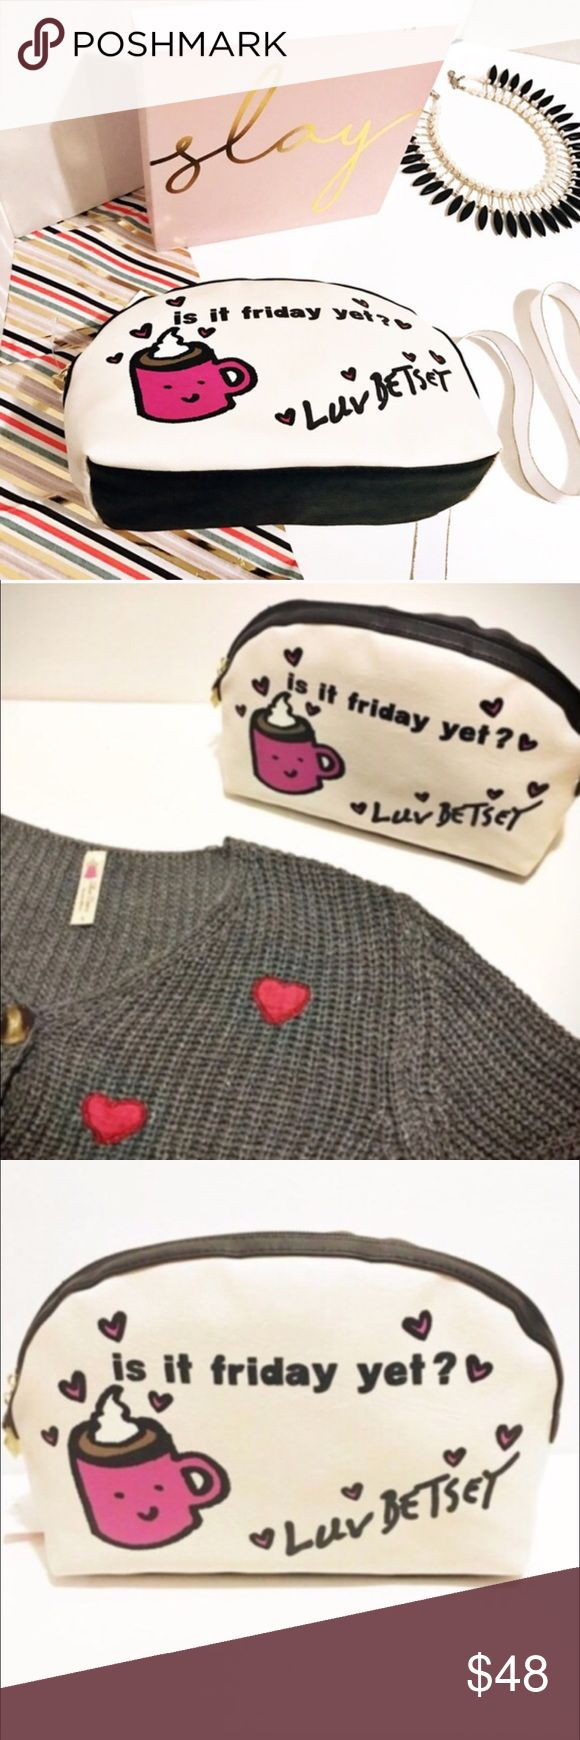 Betsey Johnson Is it Friday yet? Clutch Betsey Johnson Is it Friday yet? Clutch purse or Cosmetic makeup bag clutch. New With Tags. MSRP: $48 Betsey Johnson Bags Clutches & Wristlets